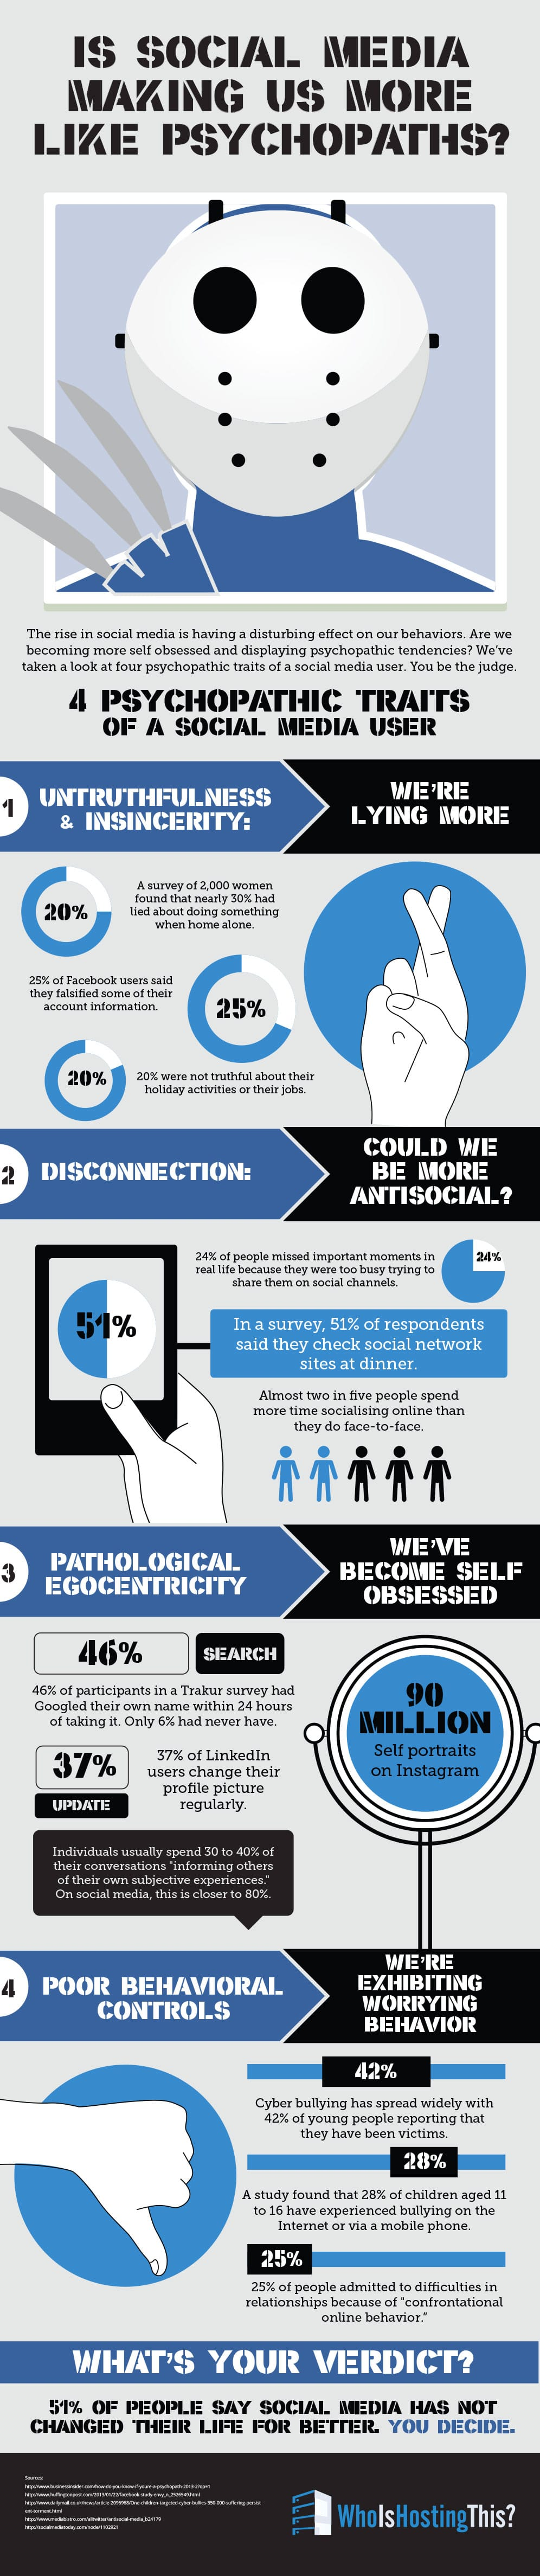 social-media-addicts-psychopaths-infographic